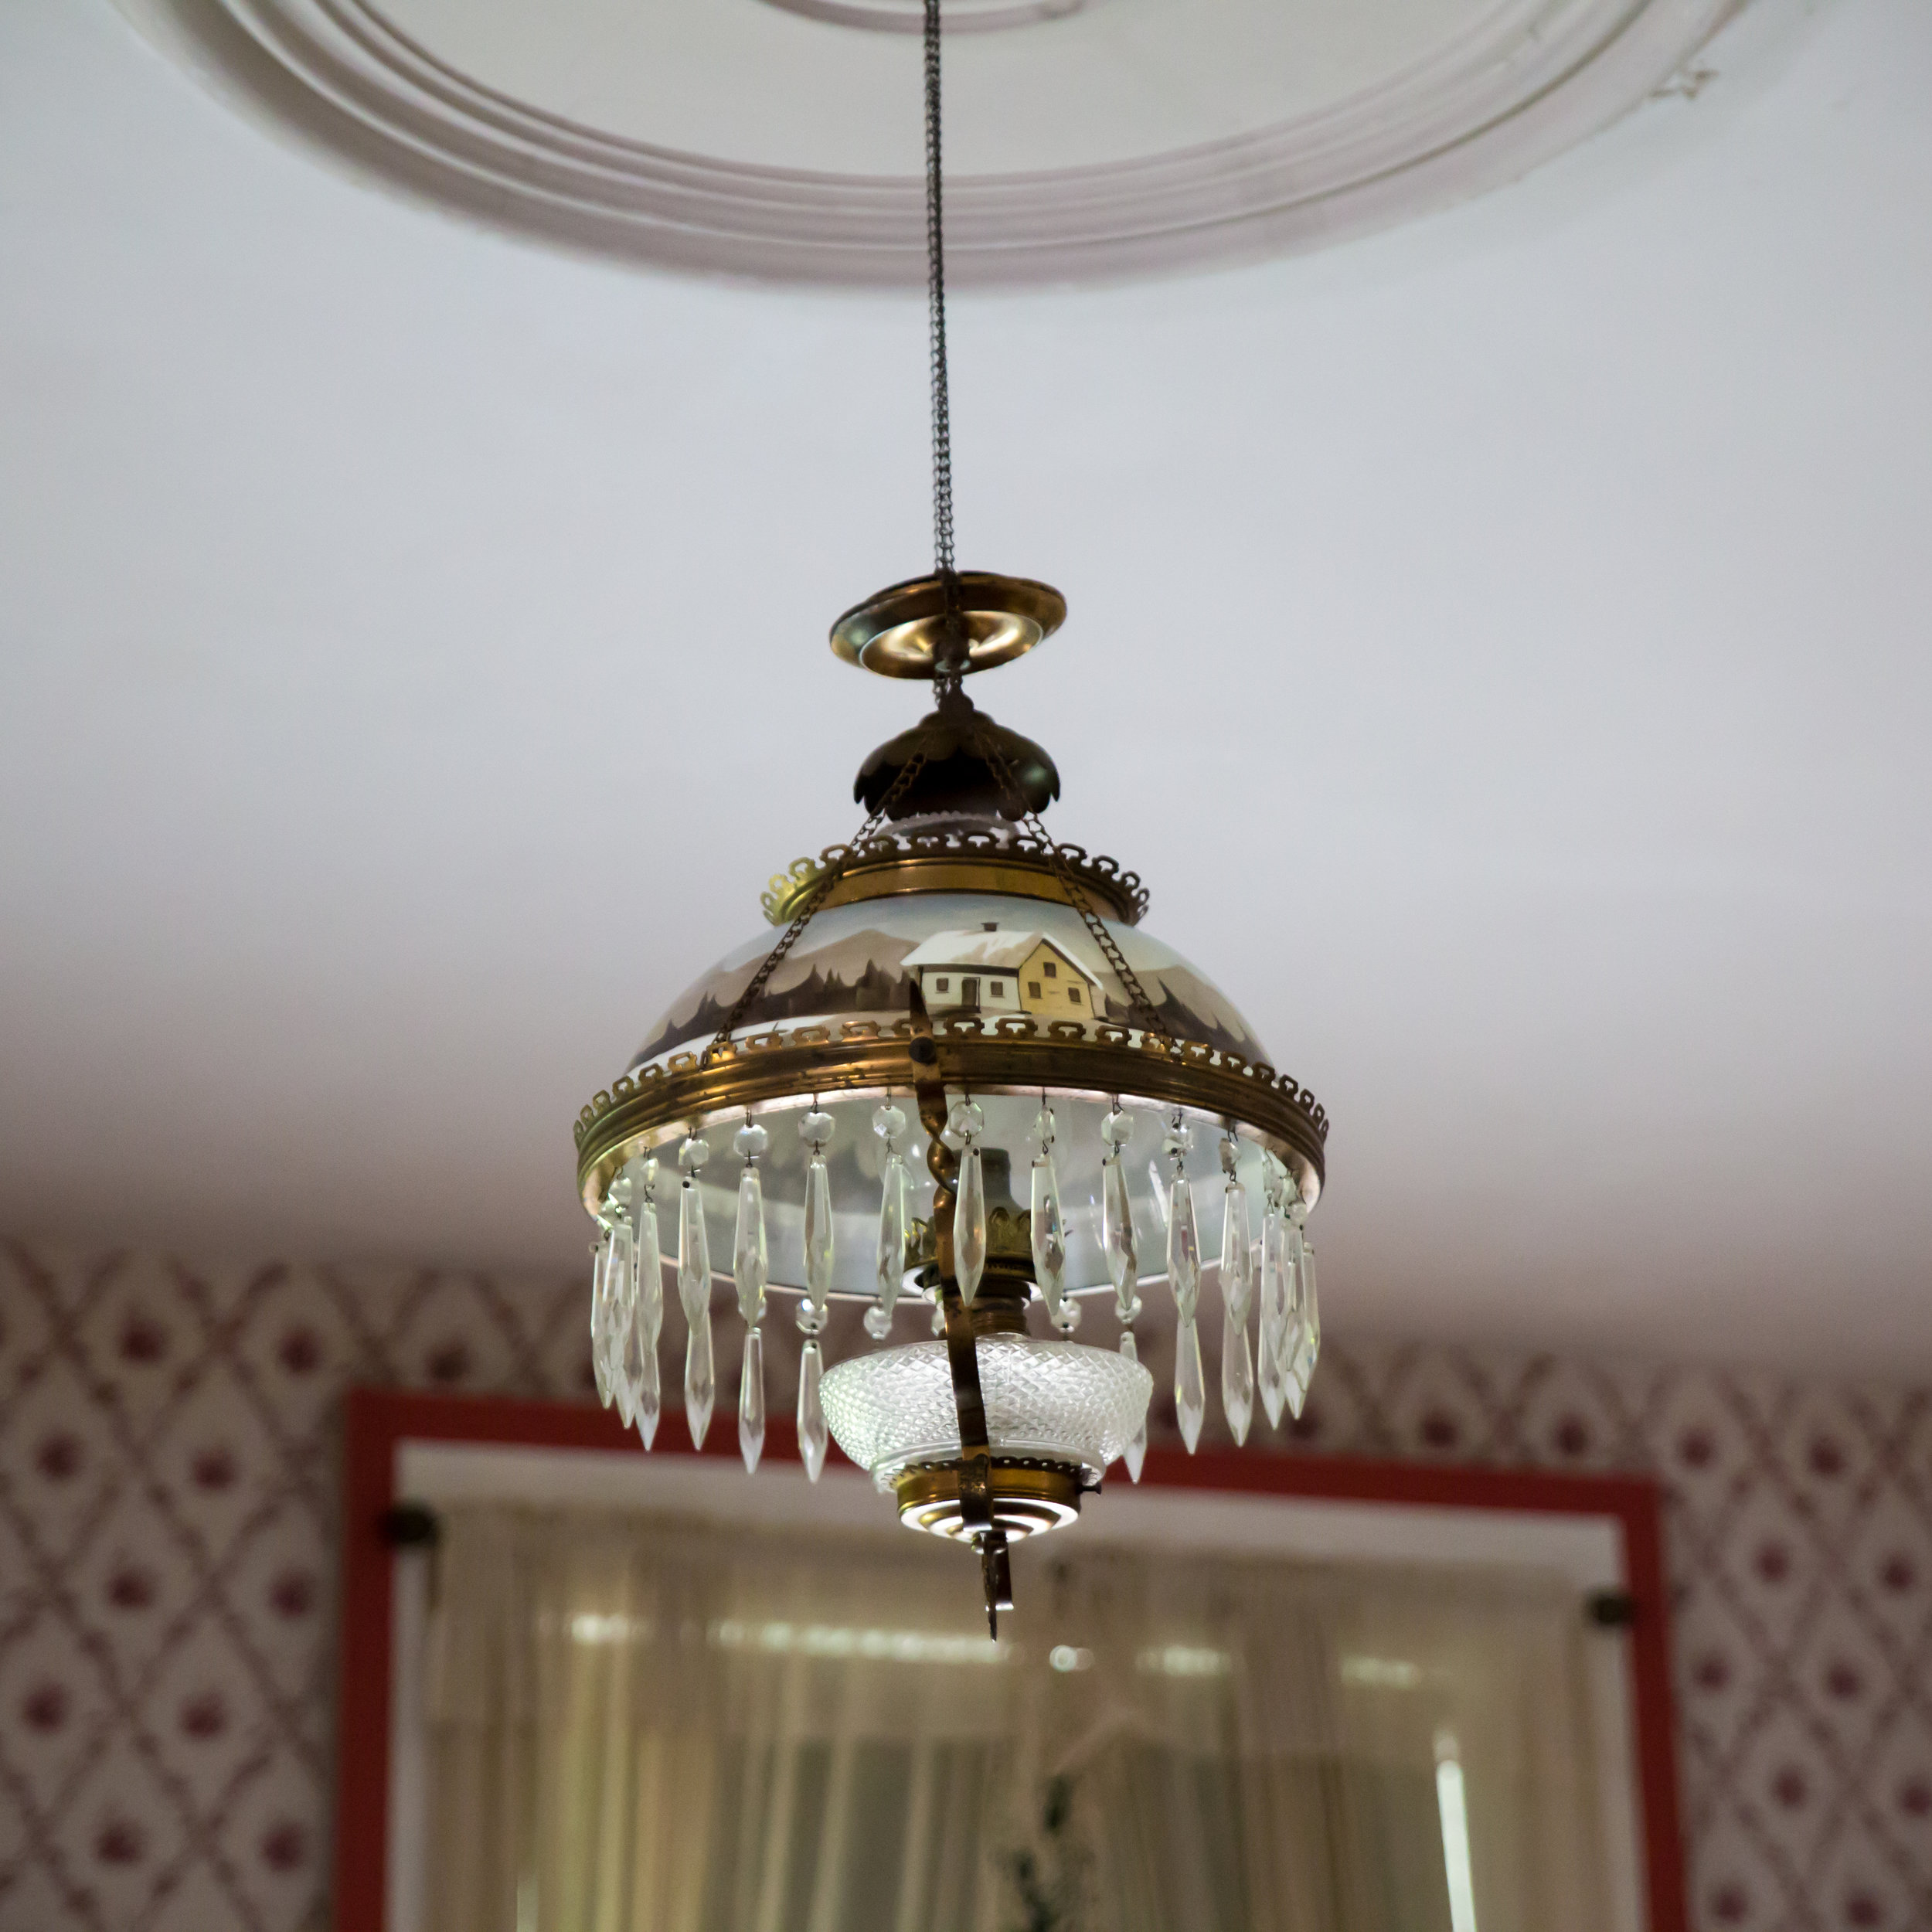 Original painted light fixture